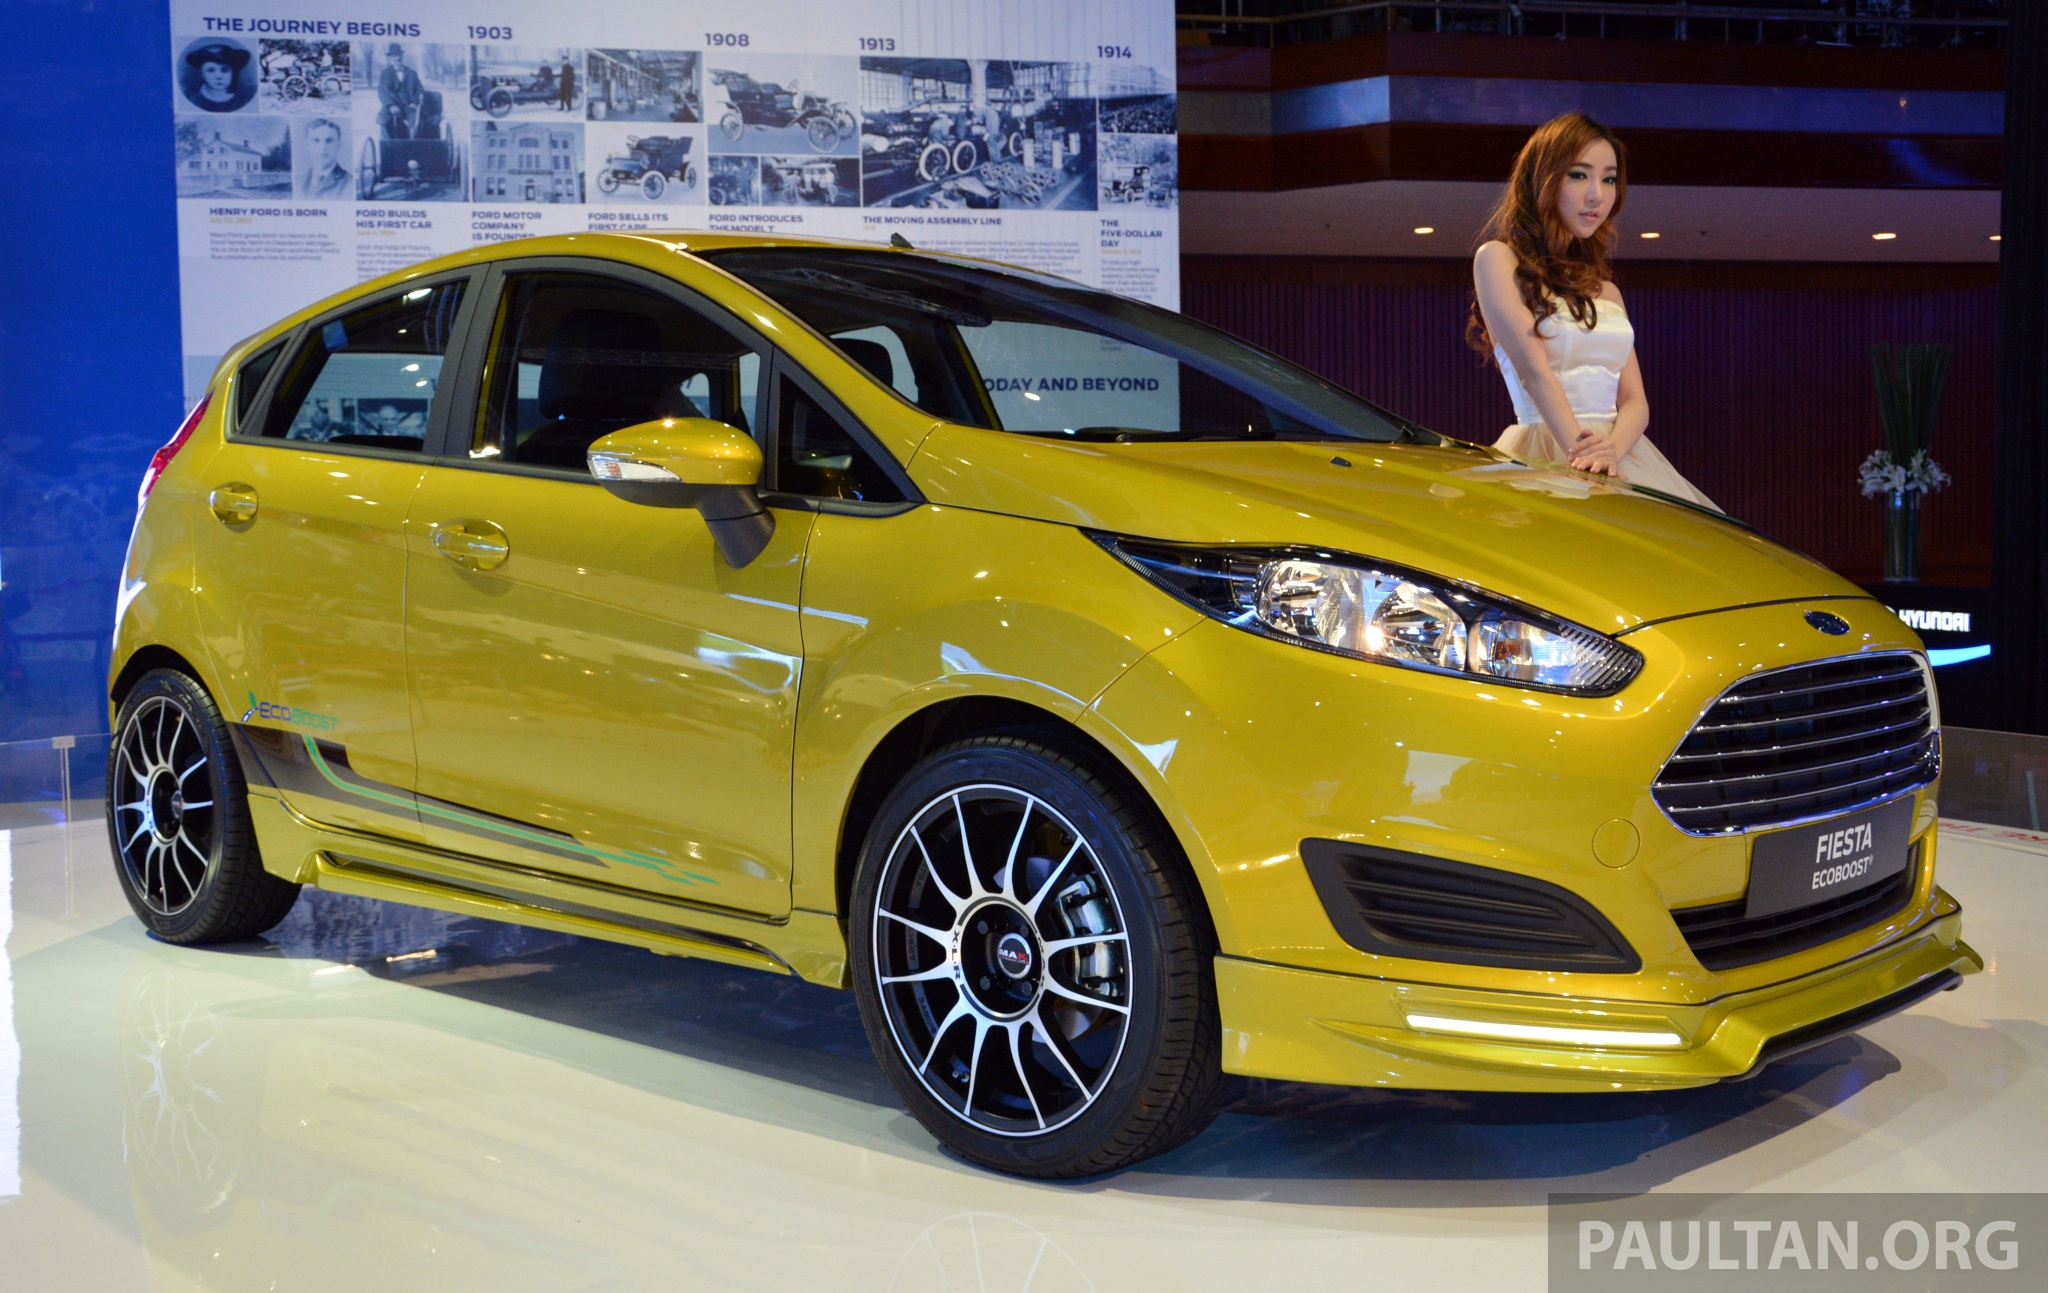 ford fiesta 1 0 ecoboost previewed at klims13 paul tan image 210114. Black Bedroom Furniture Sets. Home Design Ideas